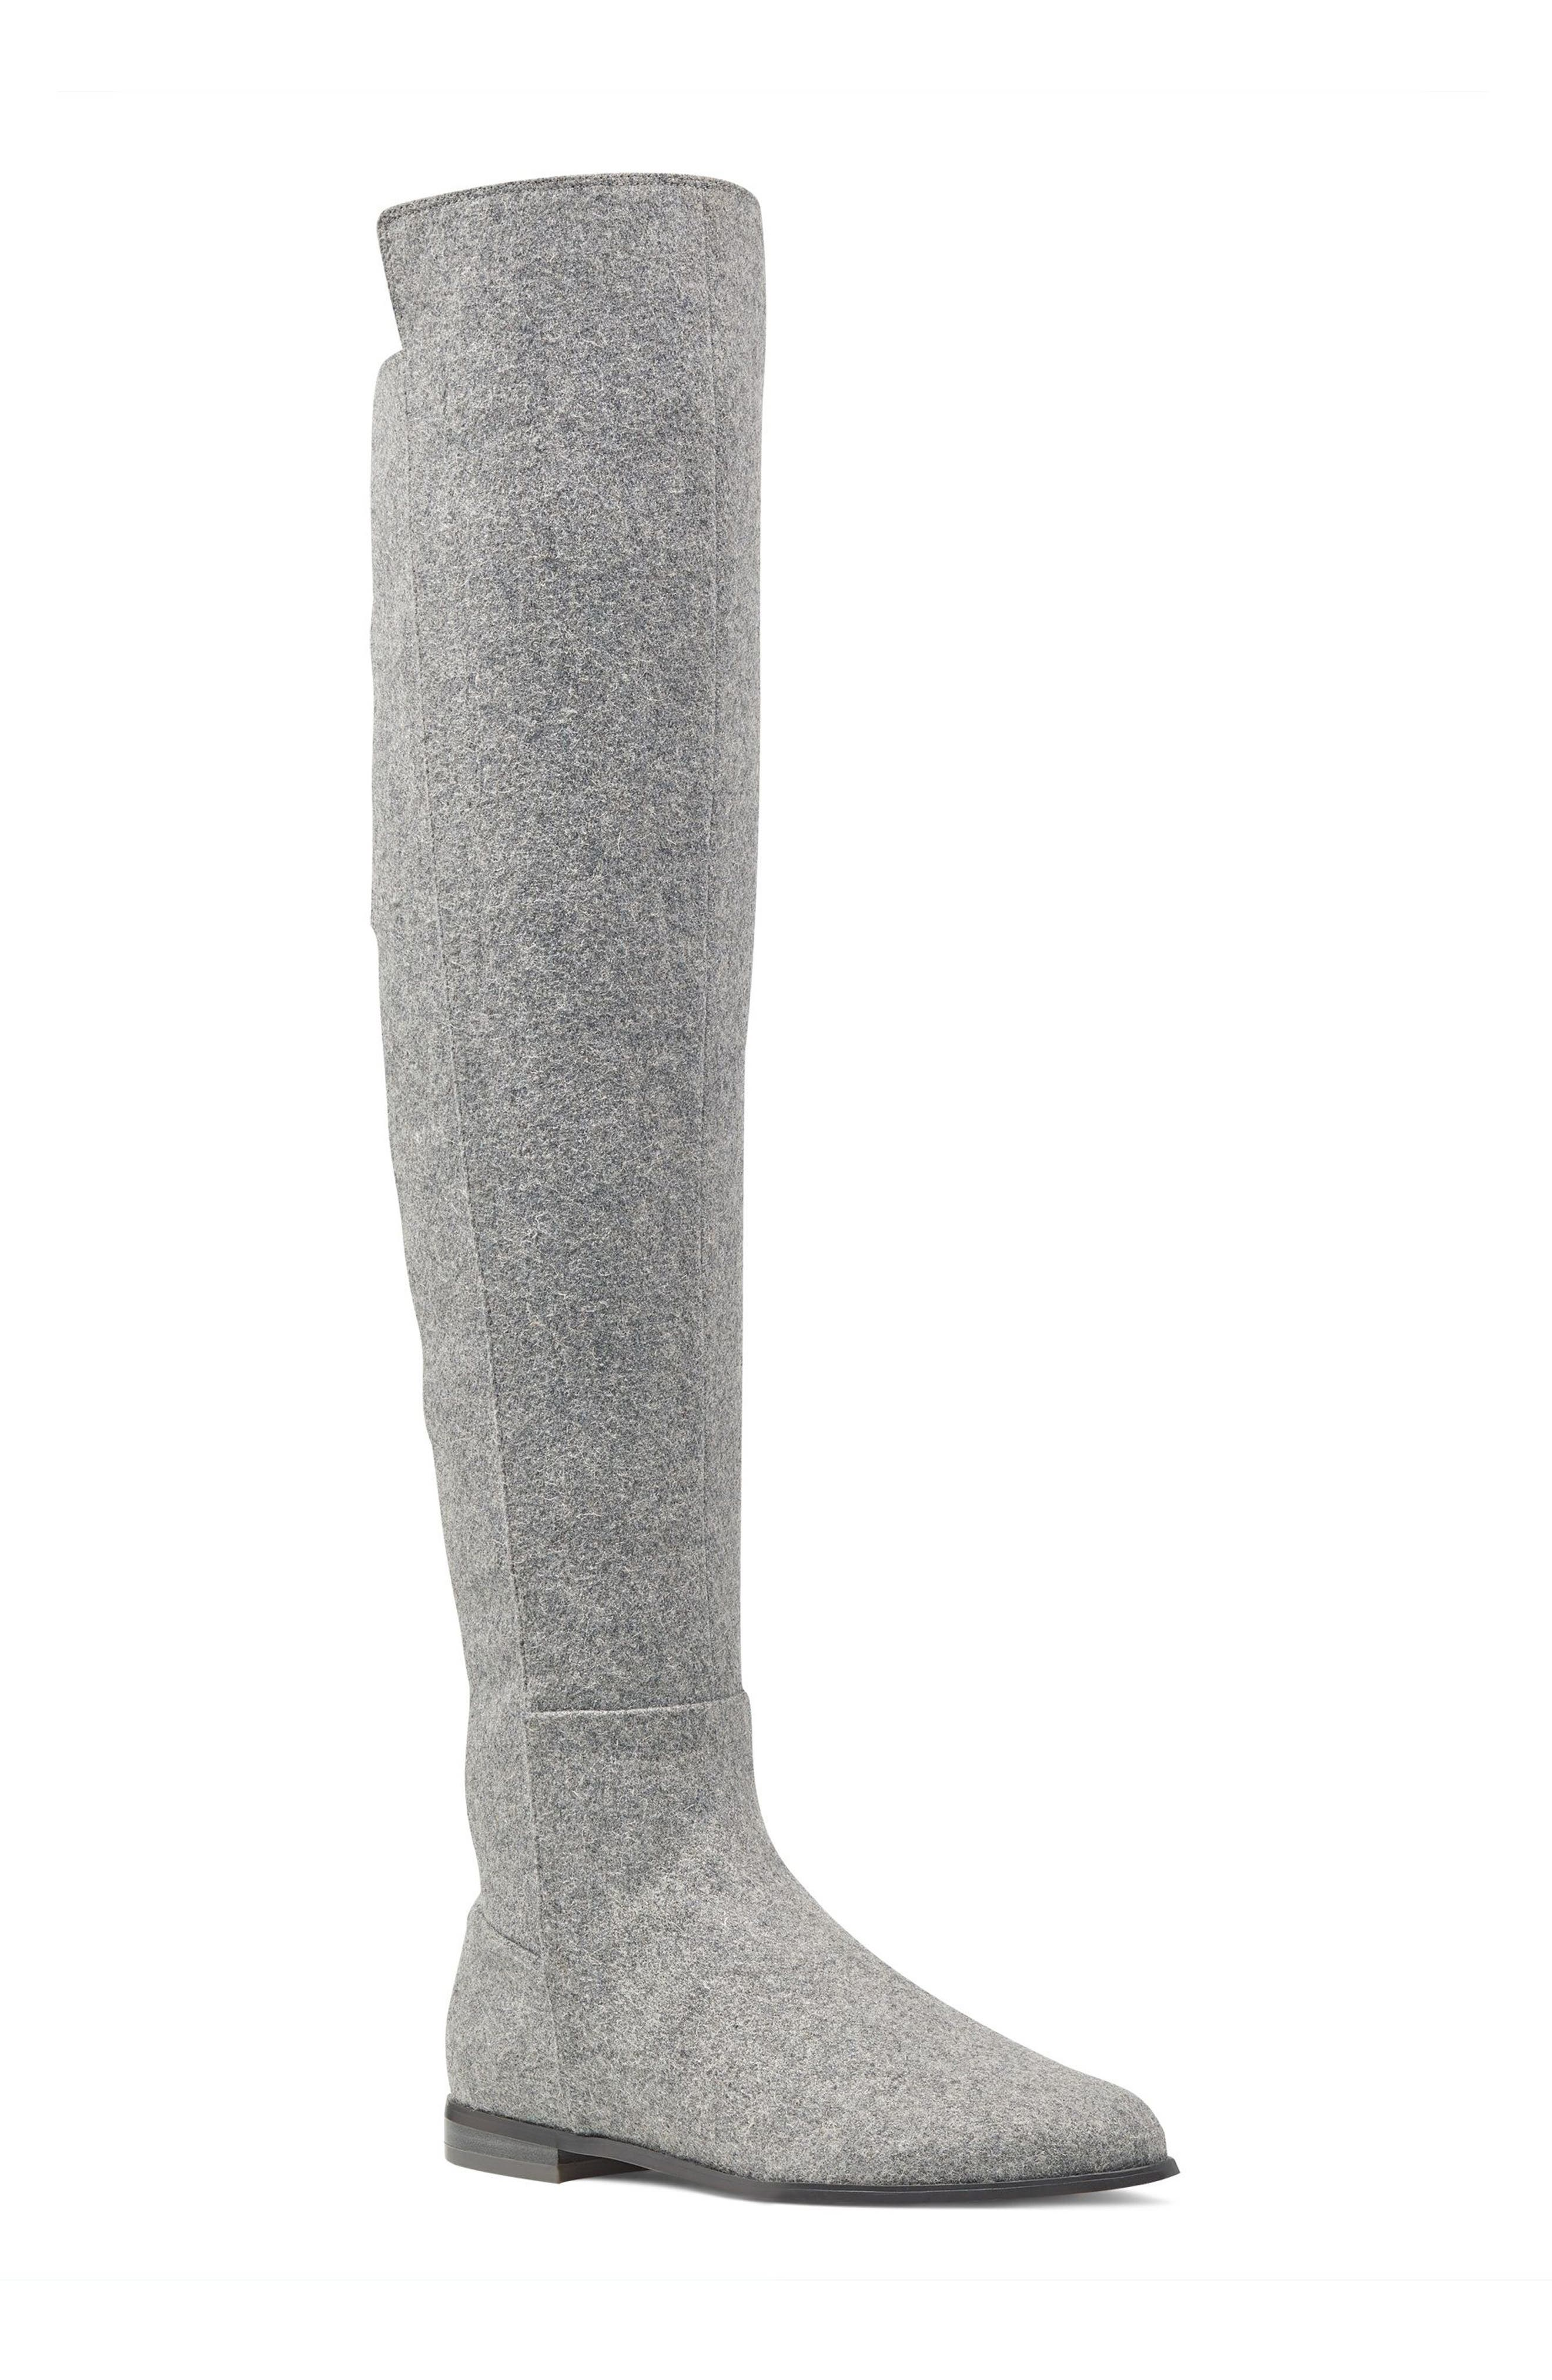 Eltynn Over the Knee Boot,                             Main thumbnail 2, color,